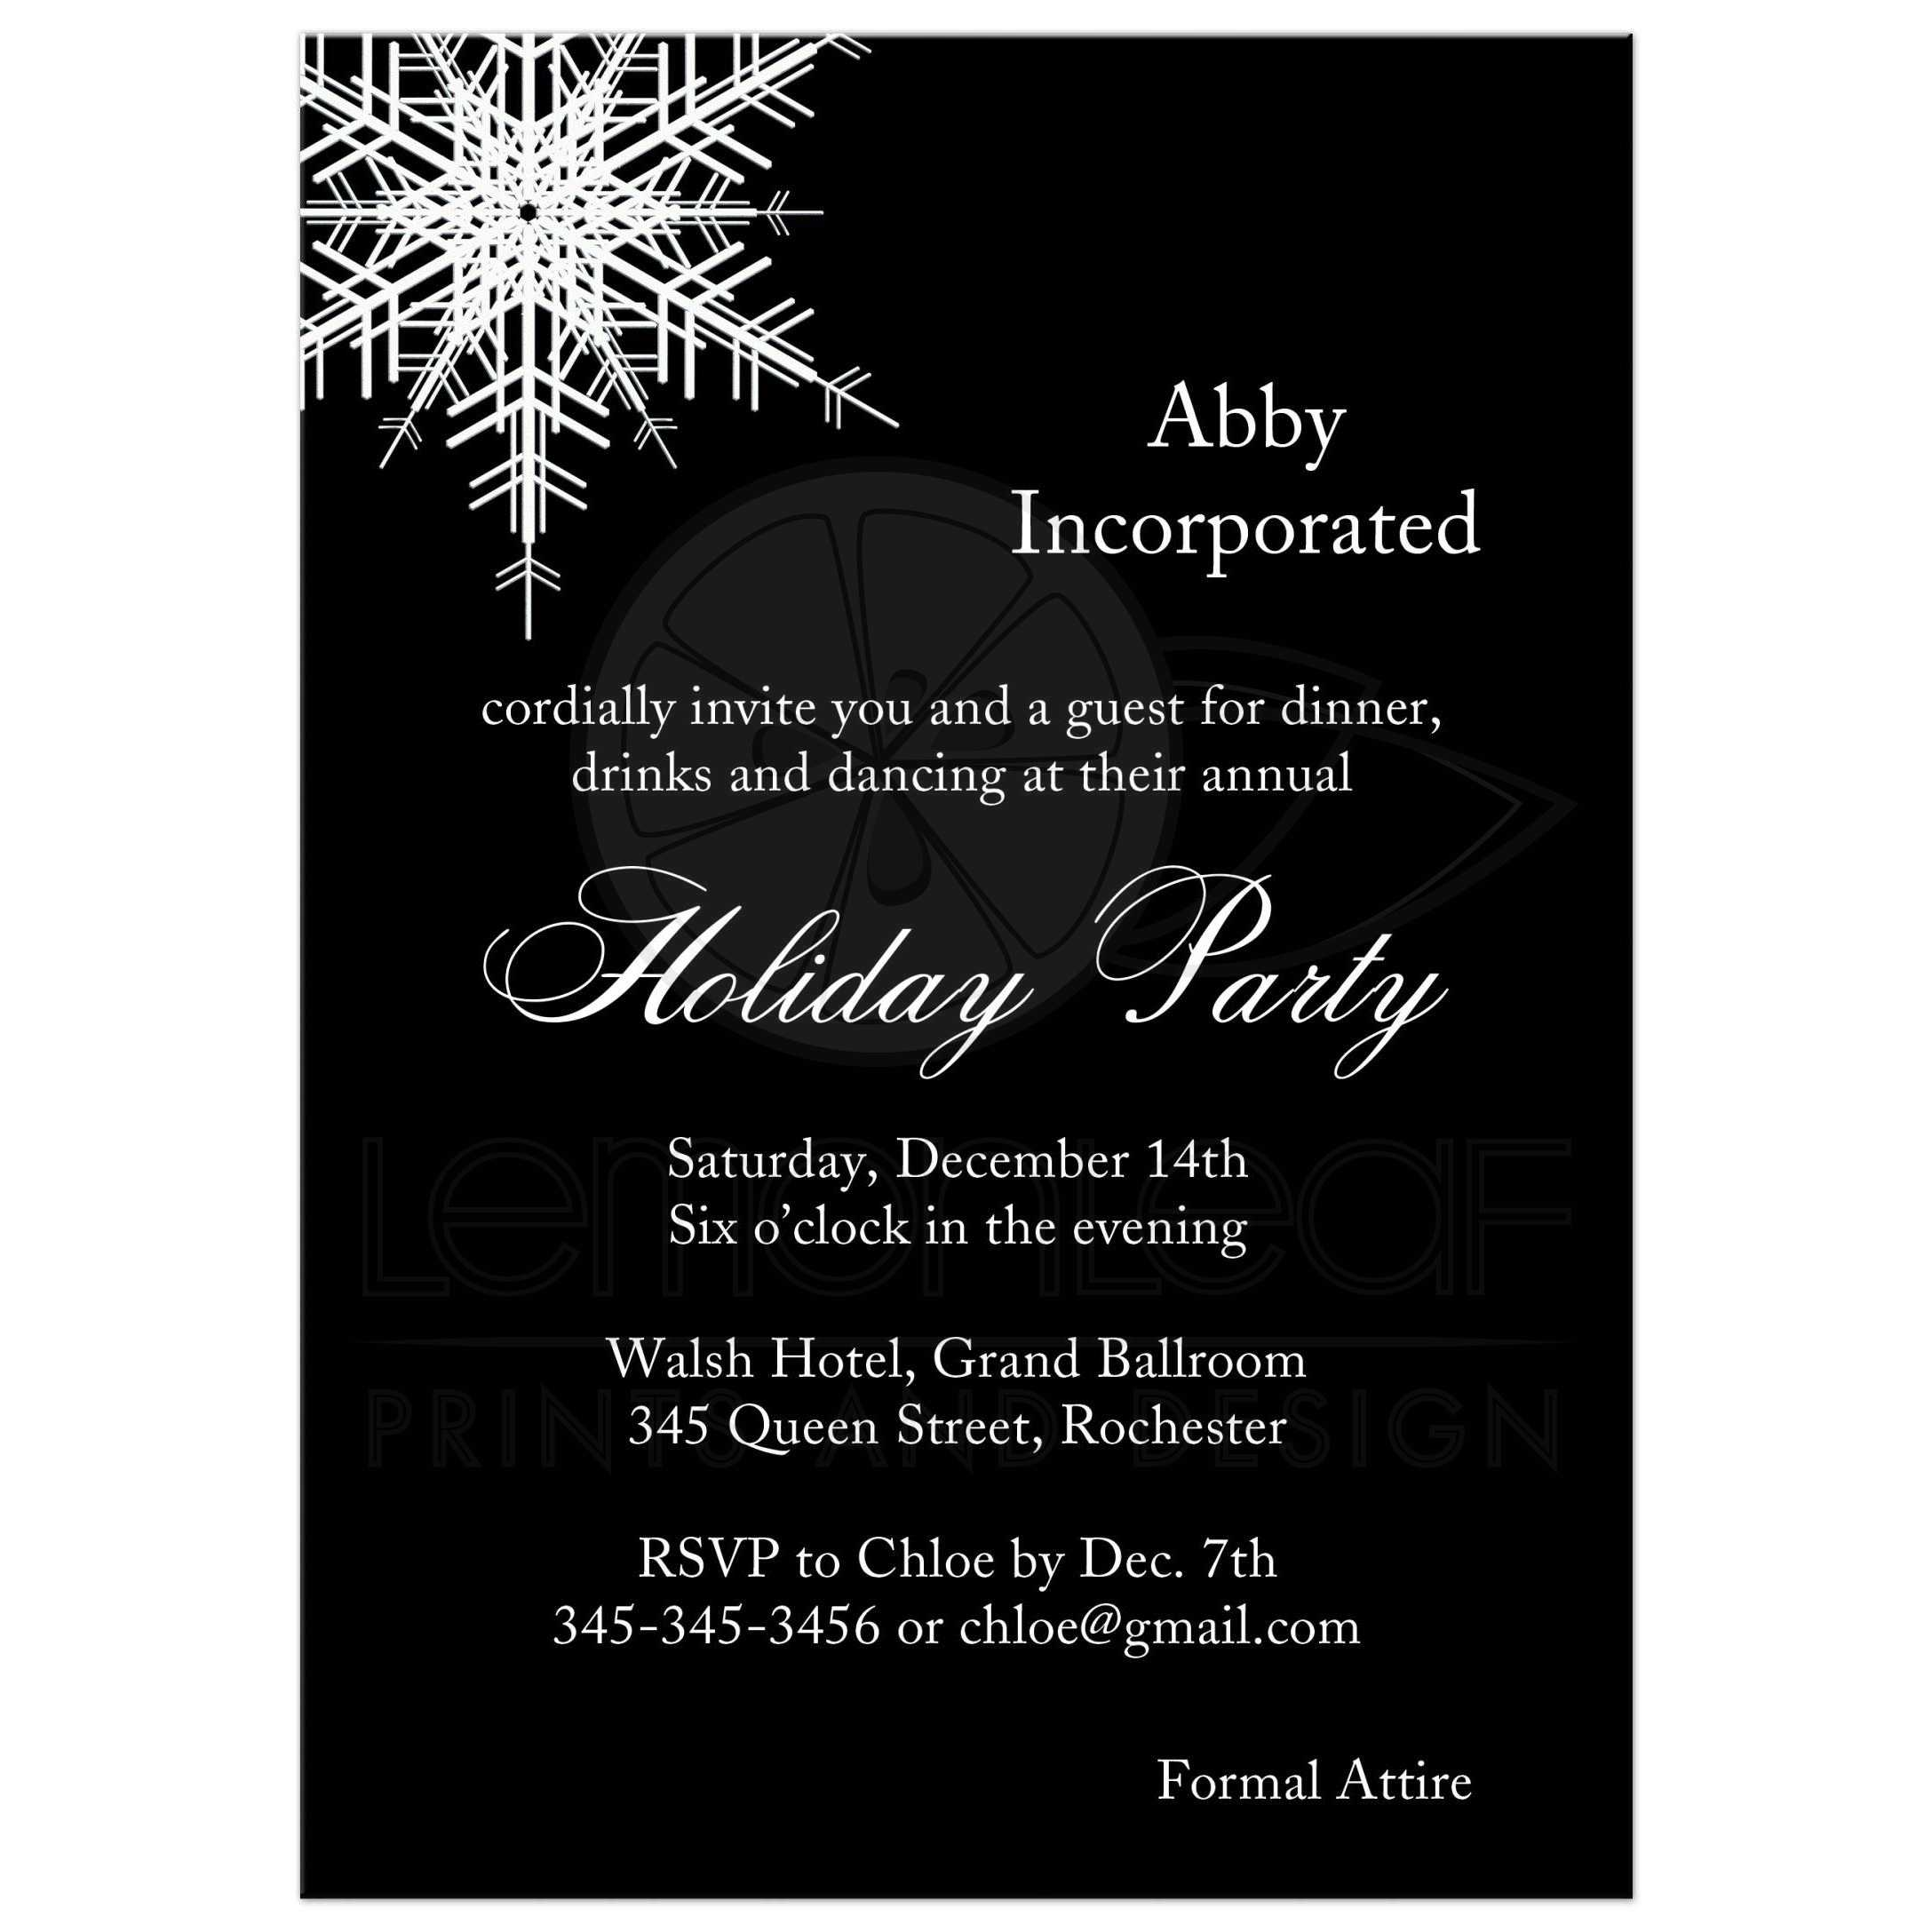 Corporate holiday party offset snowflake in black corporate holiday party invitation with large offset snowflake on bold black background stopboris